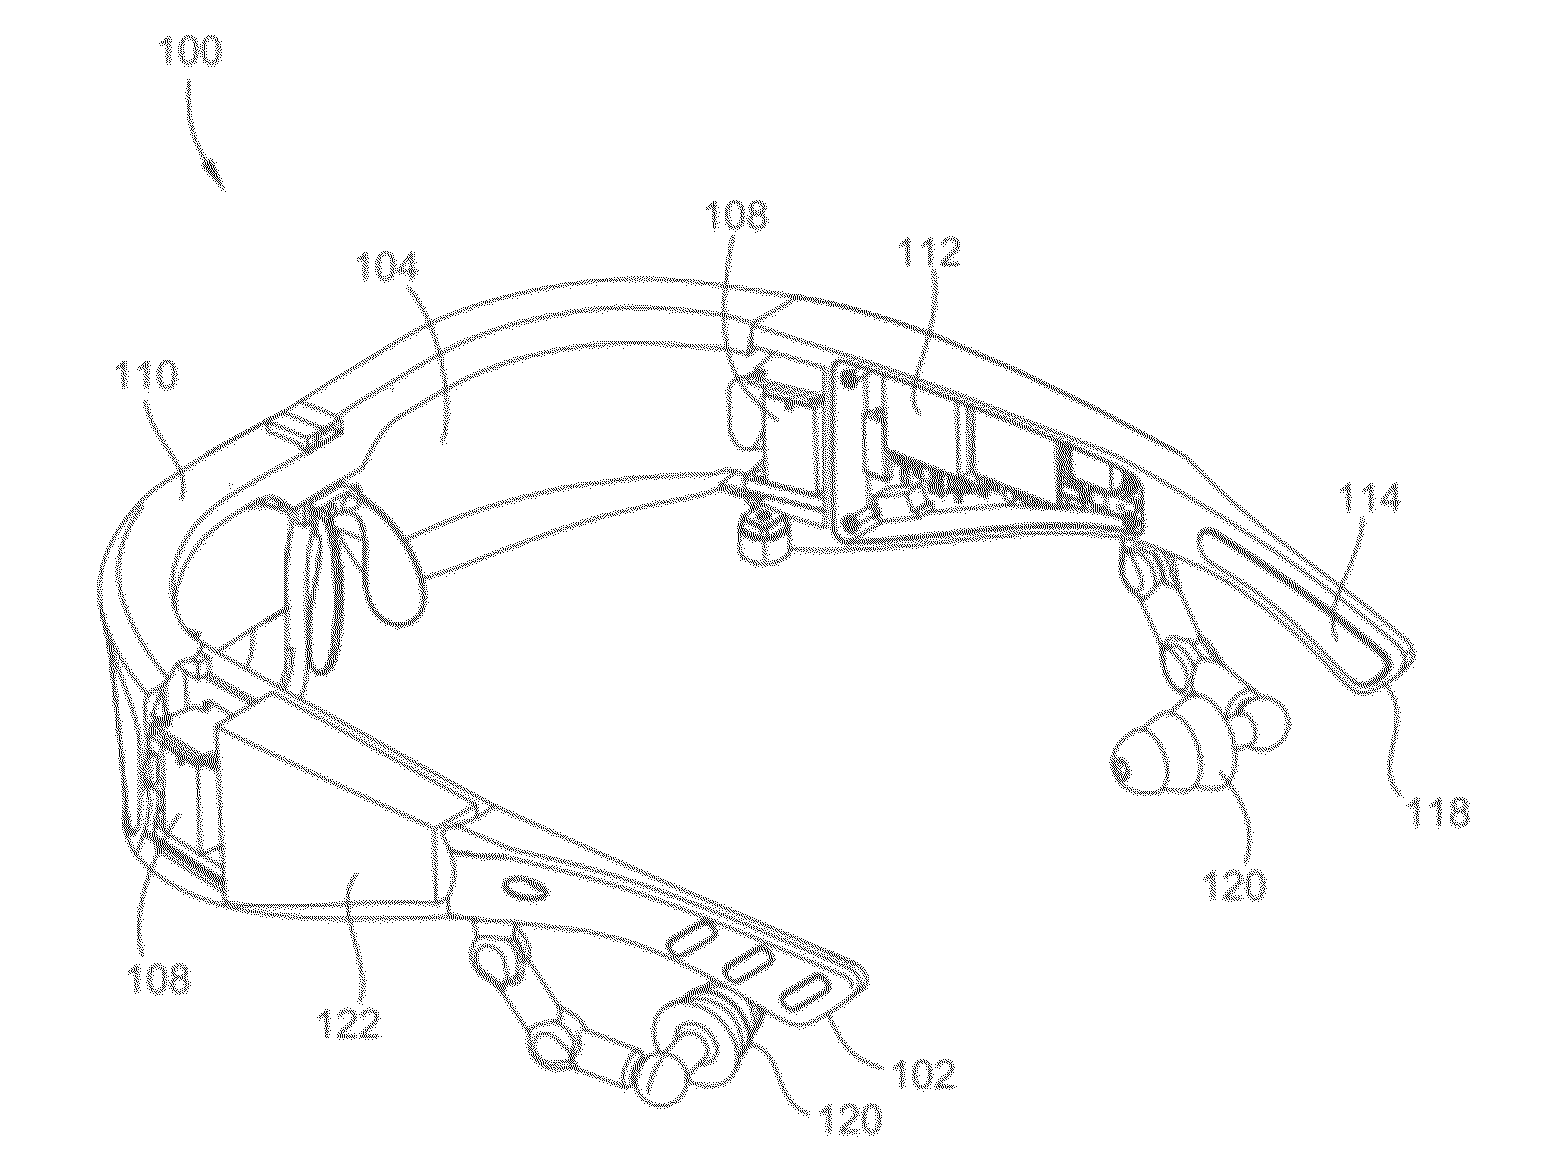 Microsoft Paid Up To 150m To Buy Wearable Computing Ip From The